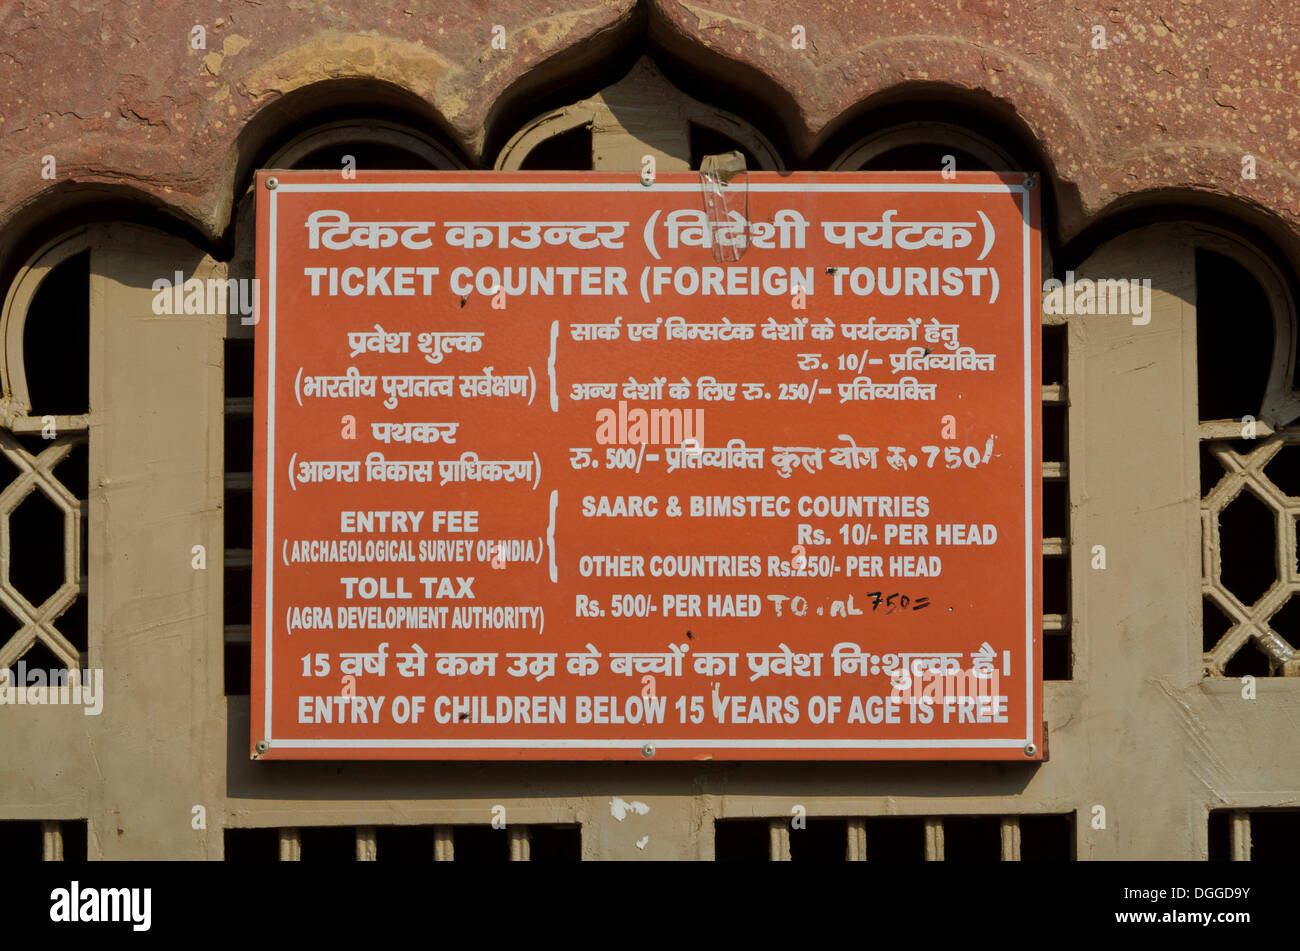 Price list with different entry fees for Indians and foreigners at the entrance of Taj Mahal, Agra, India, Asia - Stock Image